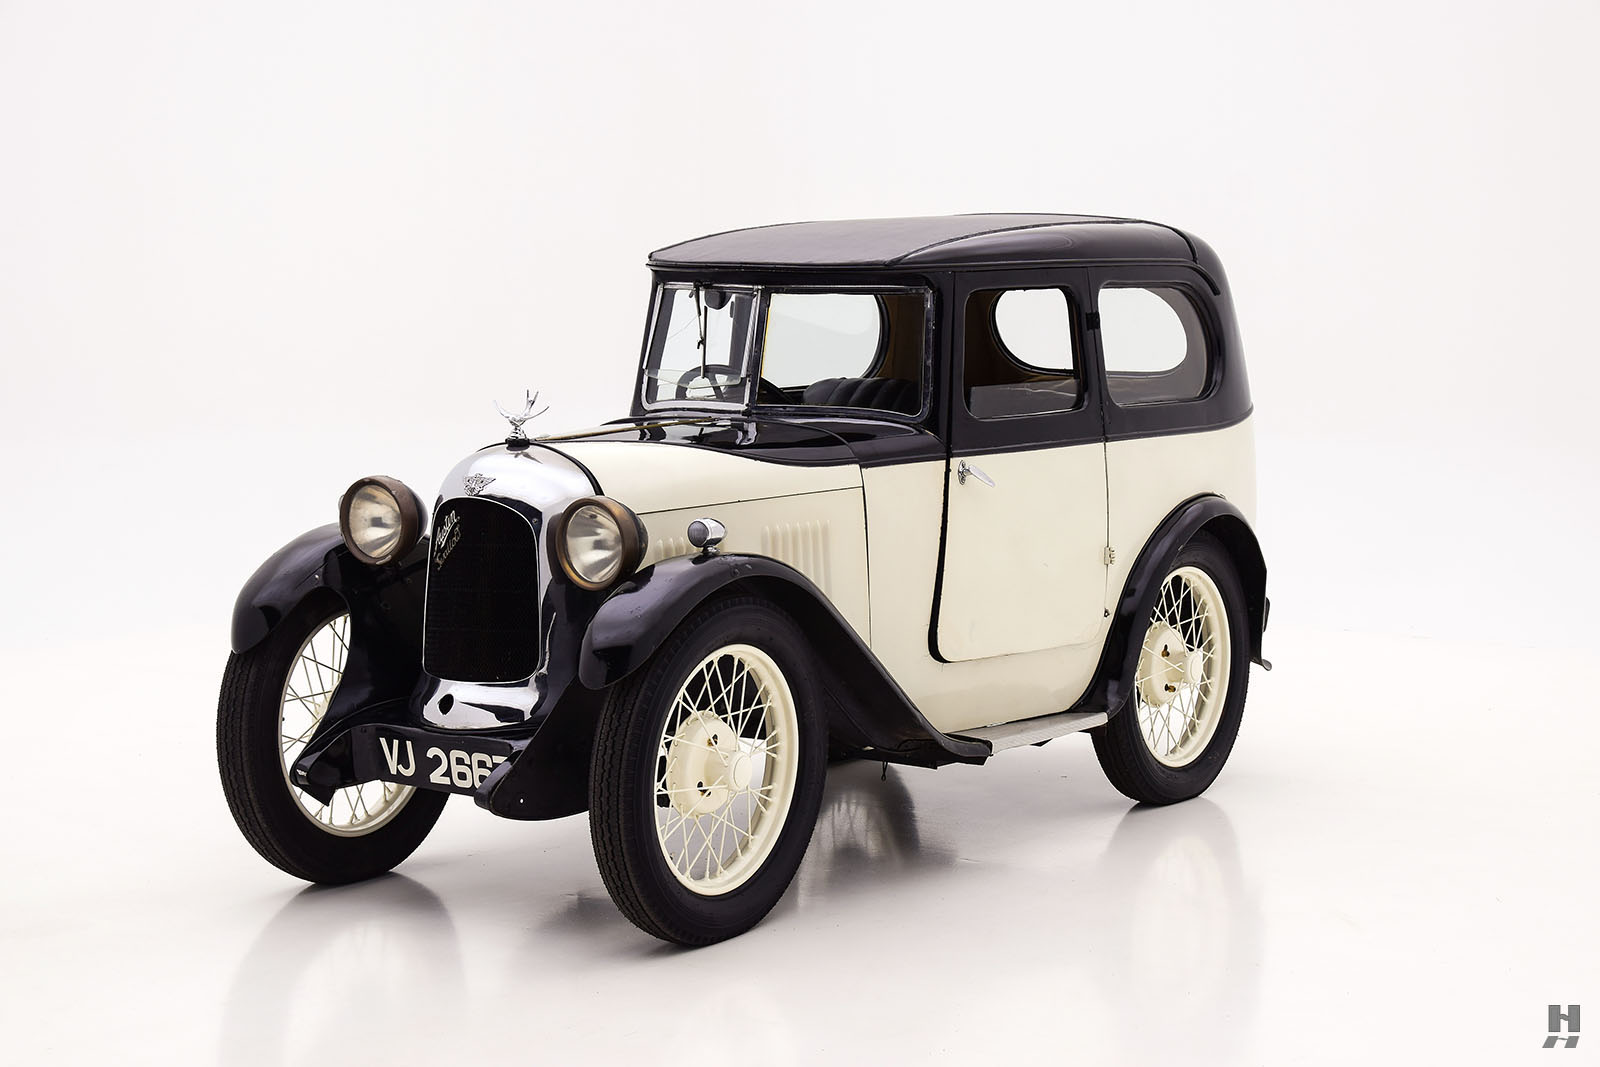 1930 Austin Swallow Saloon Coupe For Sale | Buy Classic Cars | Hyman LTD